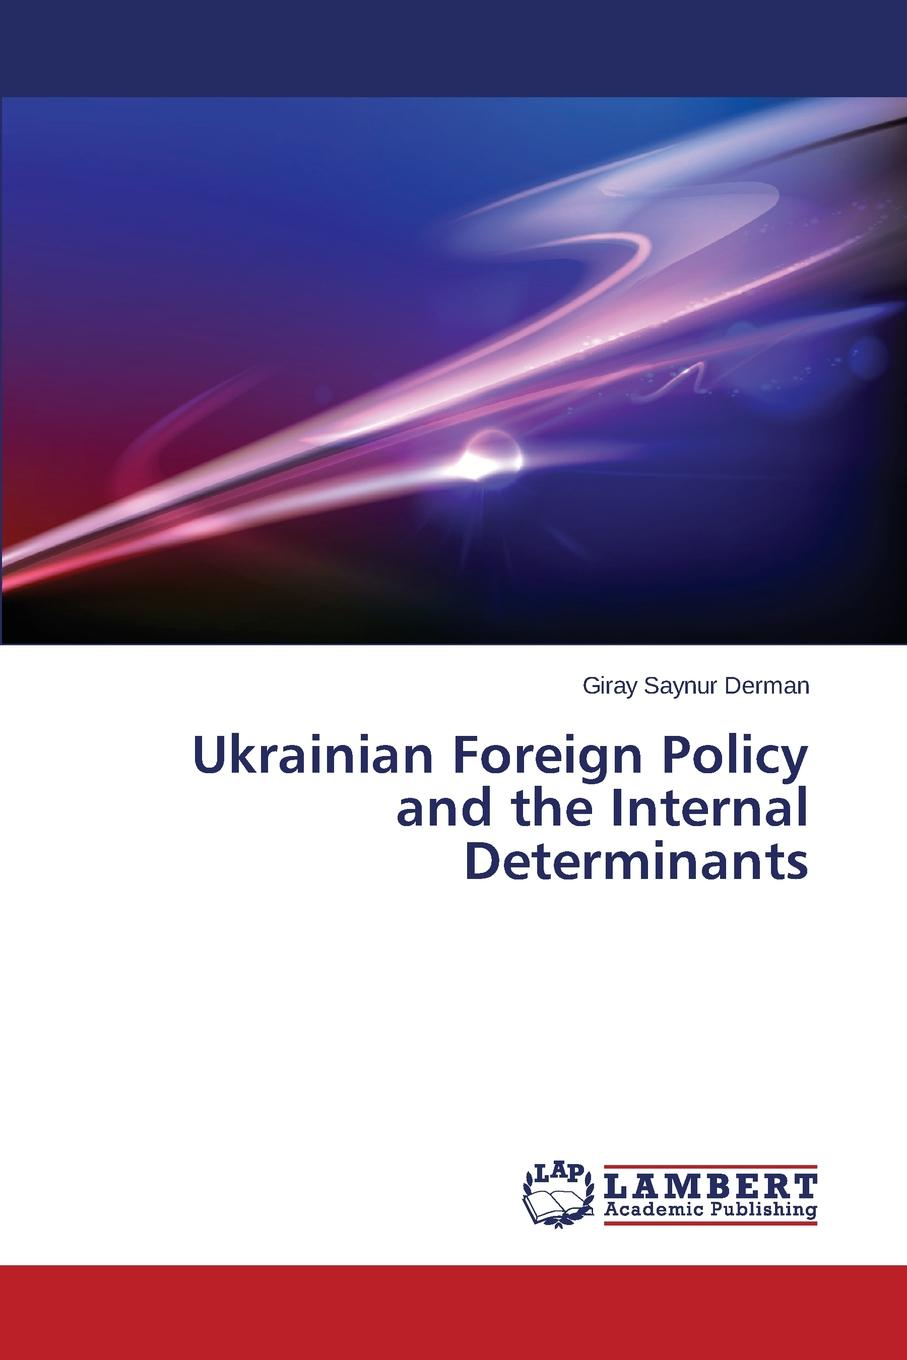 Derman Giray Saynur Ukrainian Foreign Policy and the Internal Determinants